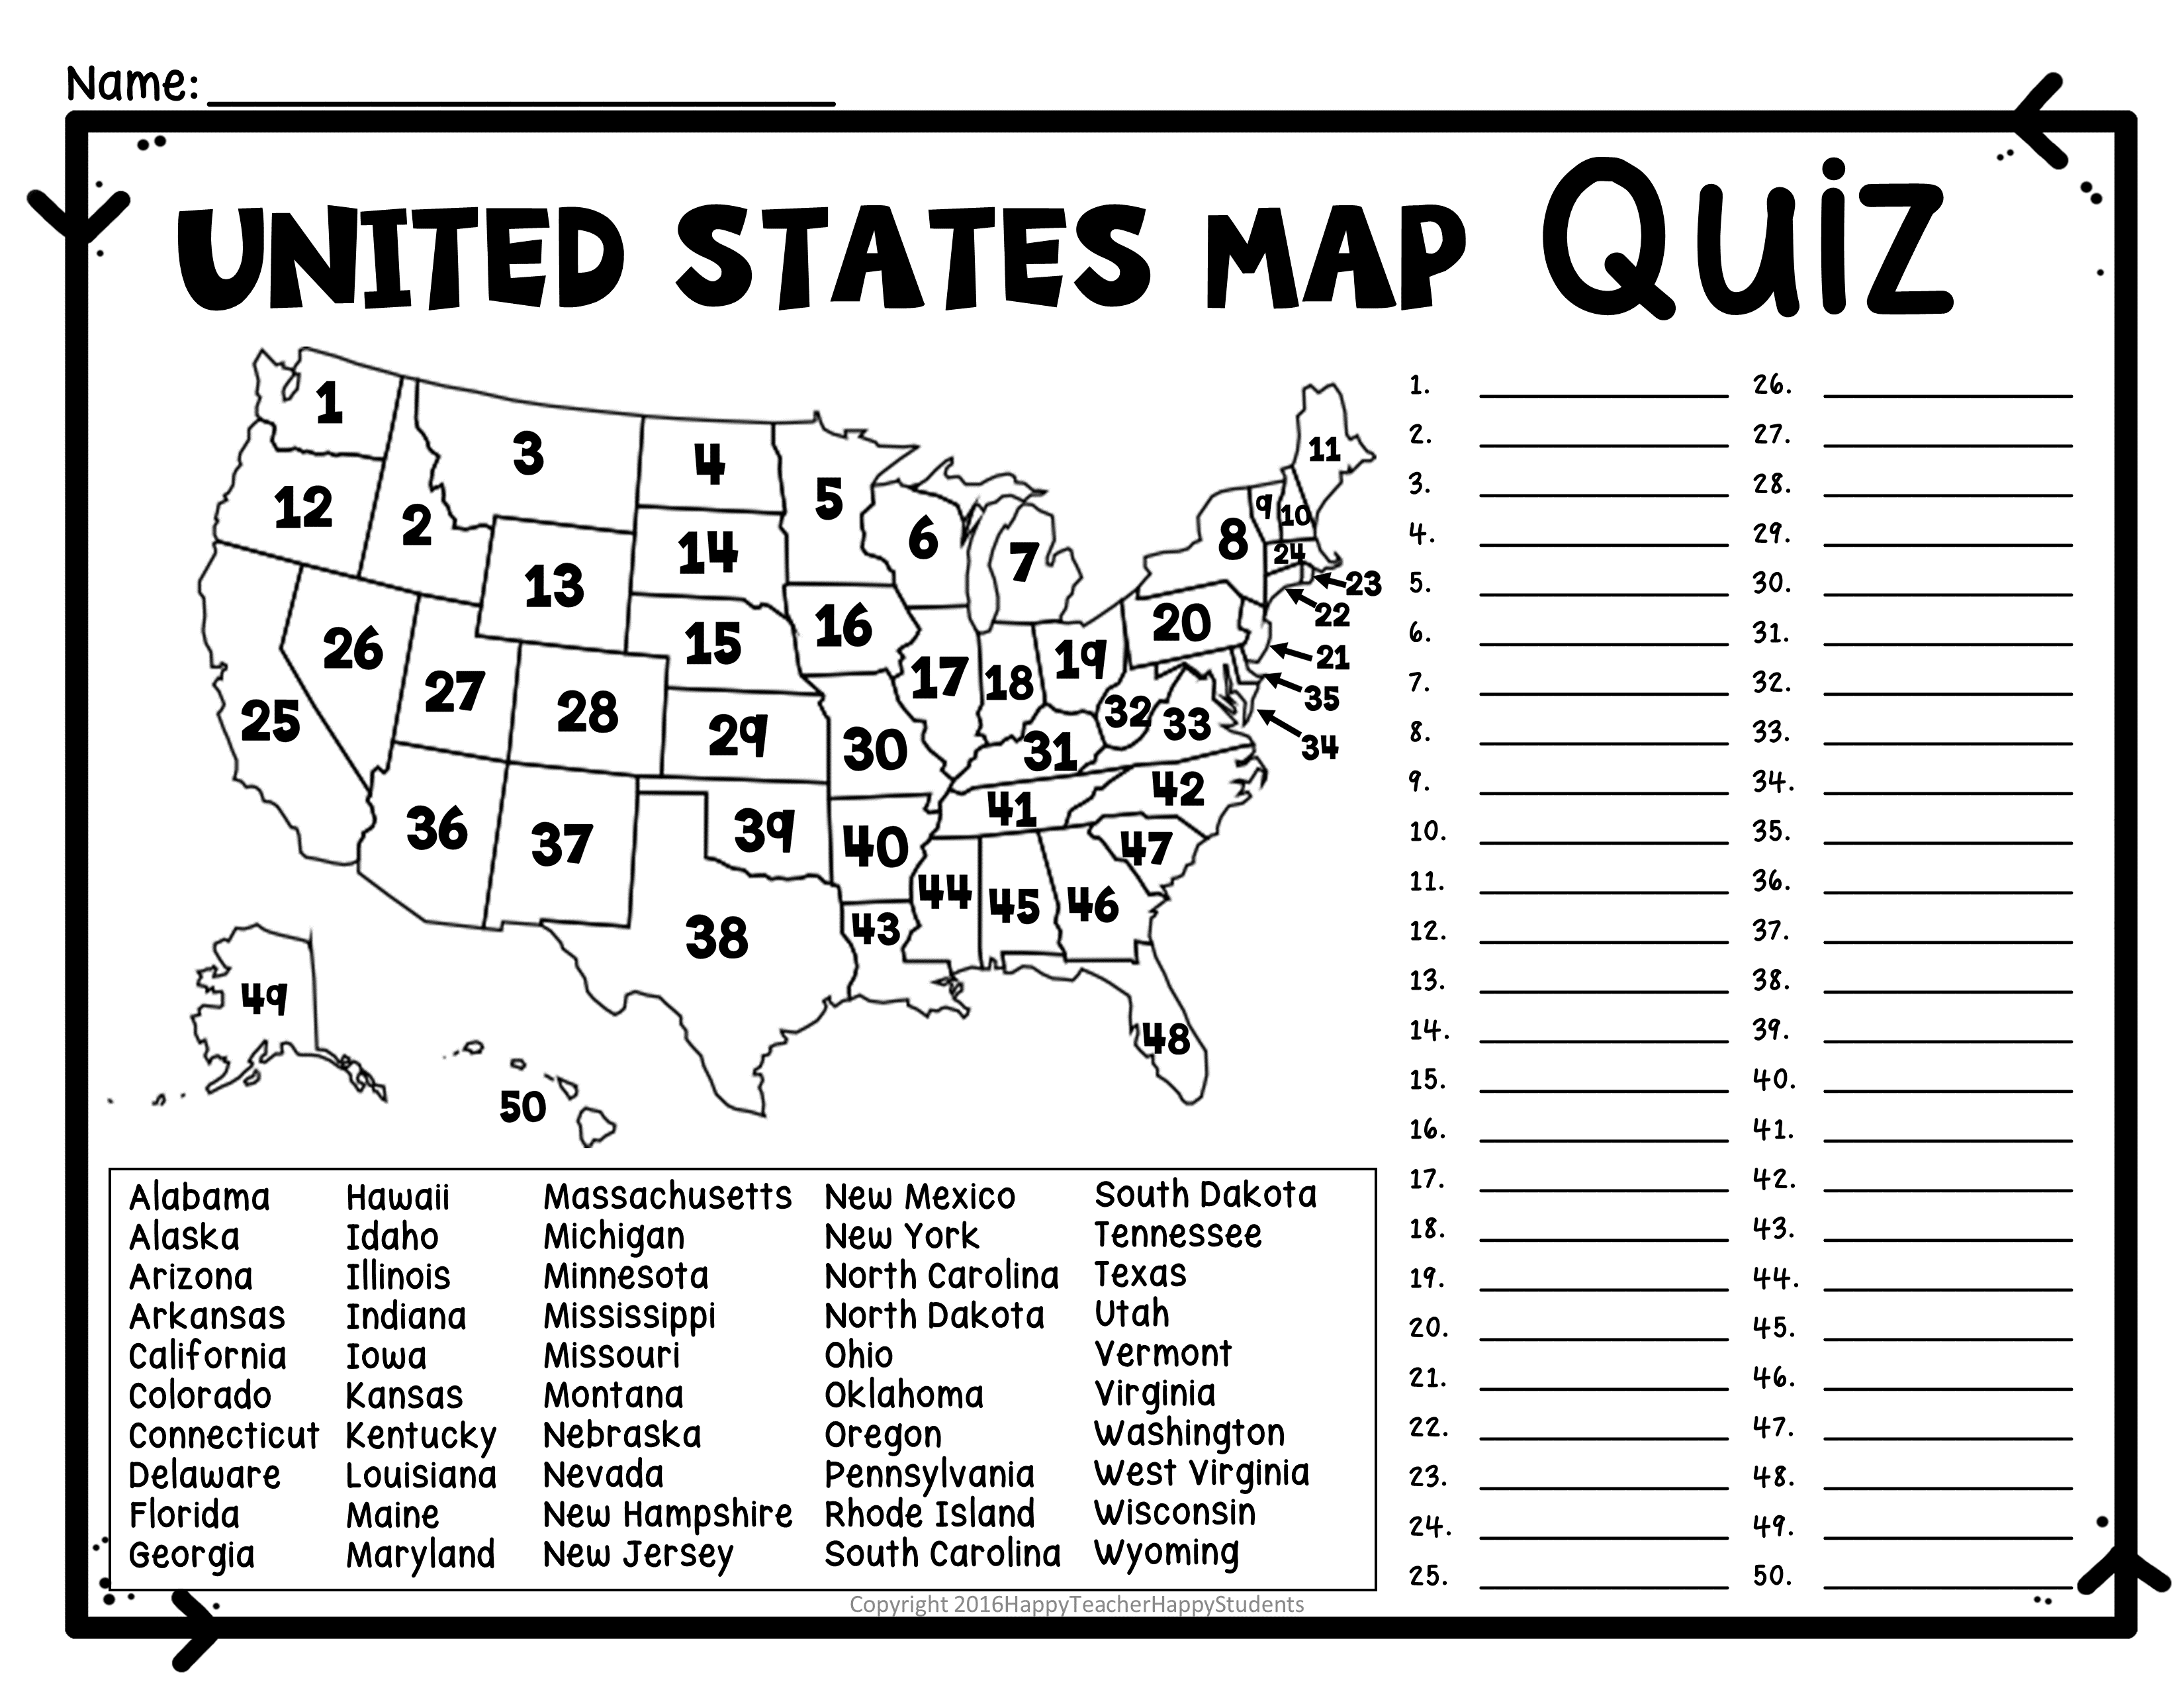 United States Map Quiz & Worksheet: USA Map Test with Practice ... on blank home map, the state map, blank canada map, blank map to print, usa map, blank united states map with rivers, blank world map, blank europe map, blank states map for testing, blank states and capitals map, blank north america map, fill in states map, blank 7 continent and oceans map, blank andhra pradesh map, blank social studies map, blank copy of united states, poorest states in america map, print blank state map, western states blank map, blank us map,